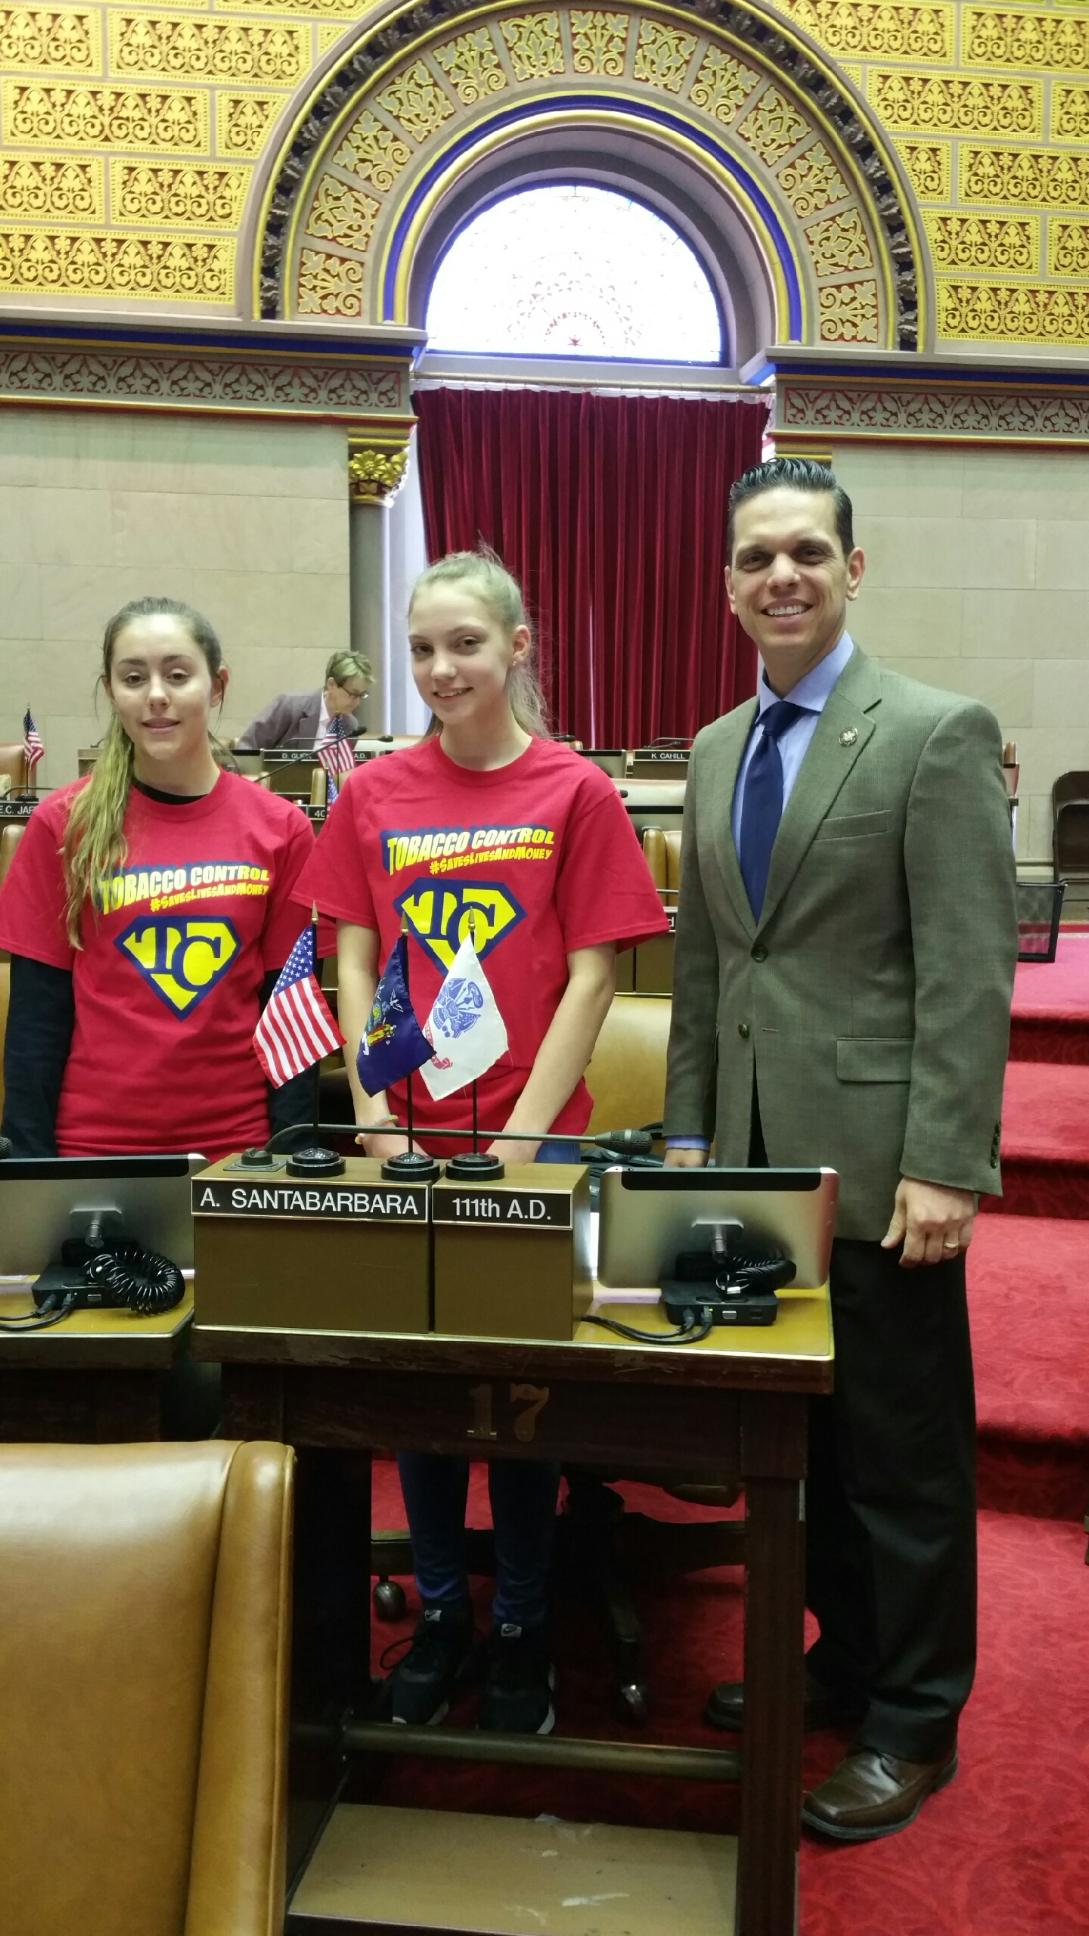 Fort Plain RC - RC youth from Fort Plain, NY spending time with Assemblyman Angelo Santabarbara on the floor of the Assembly at the State Capitol.